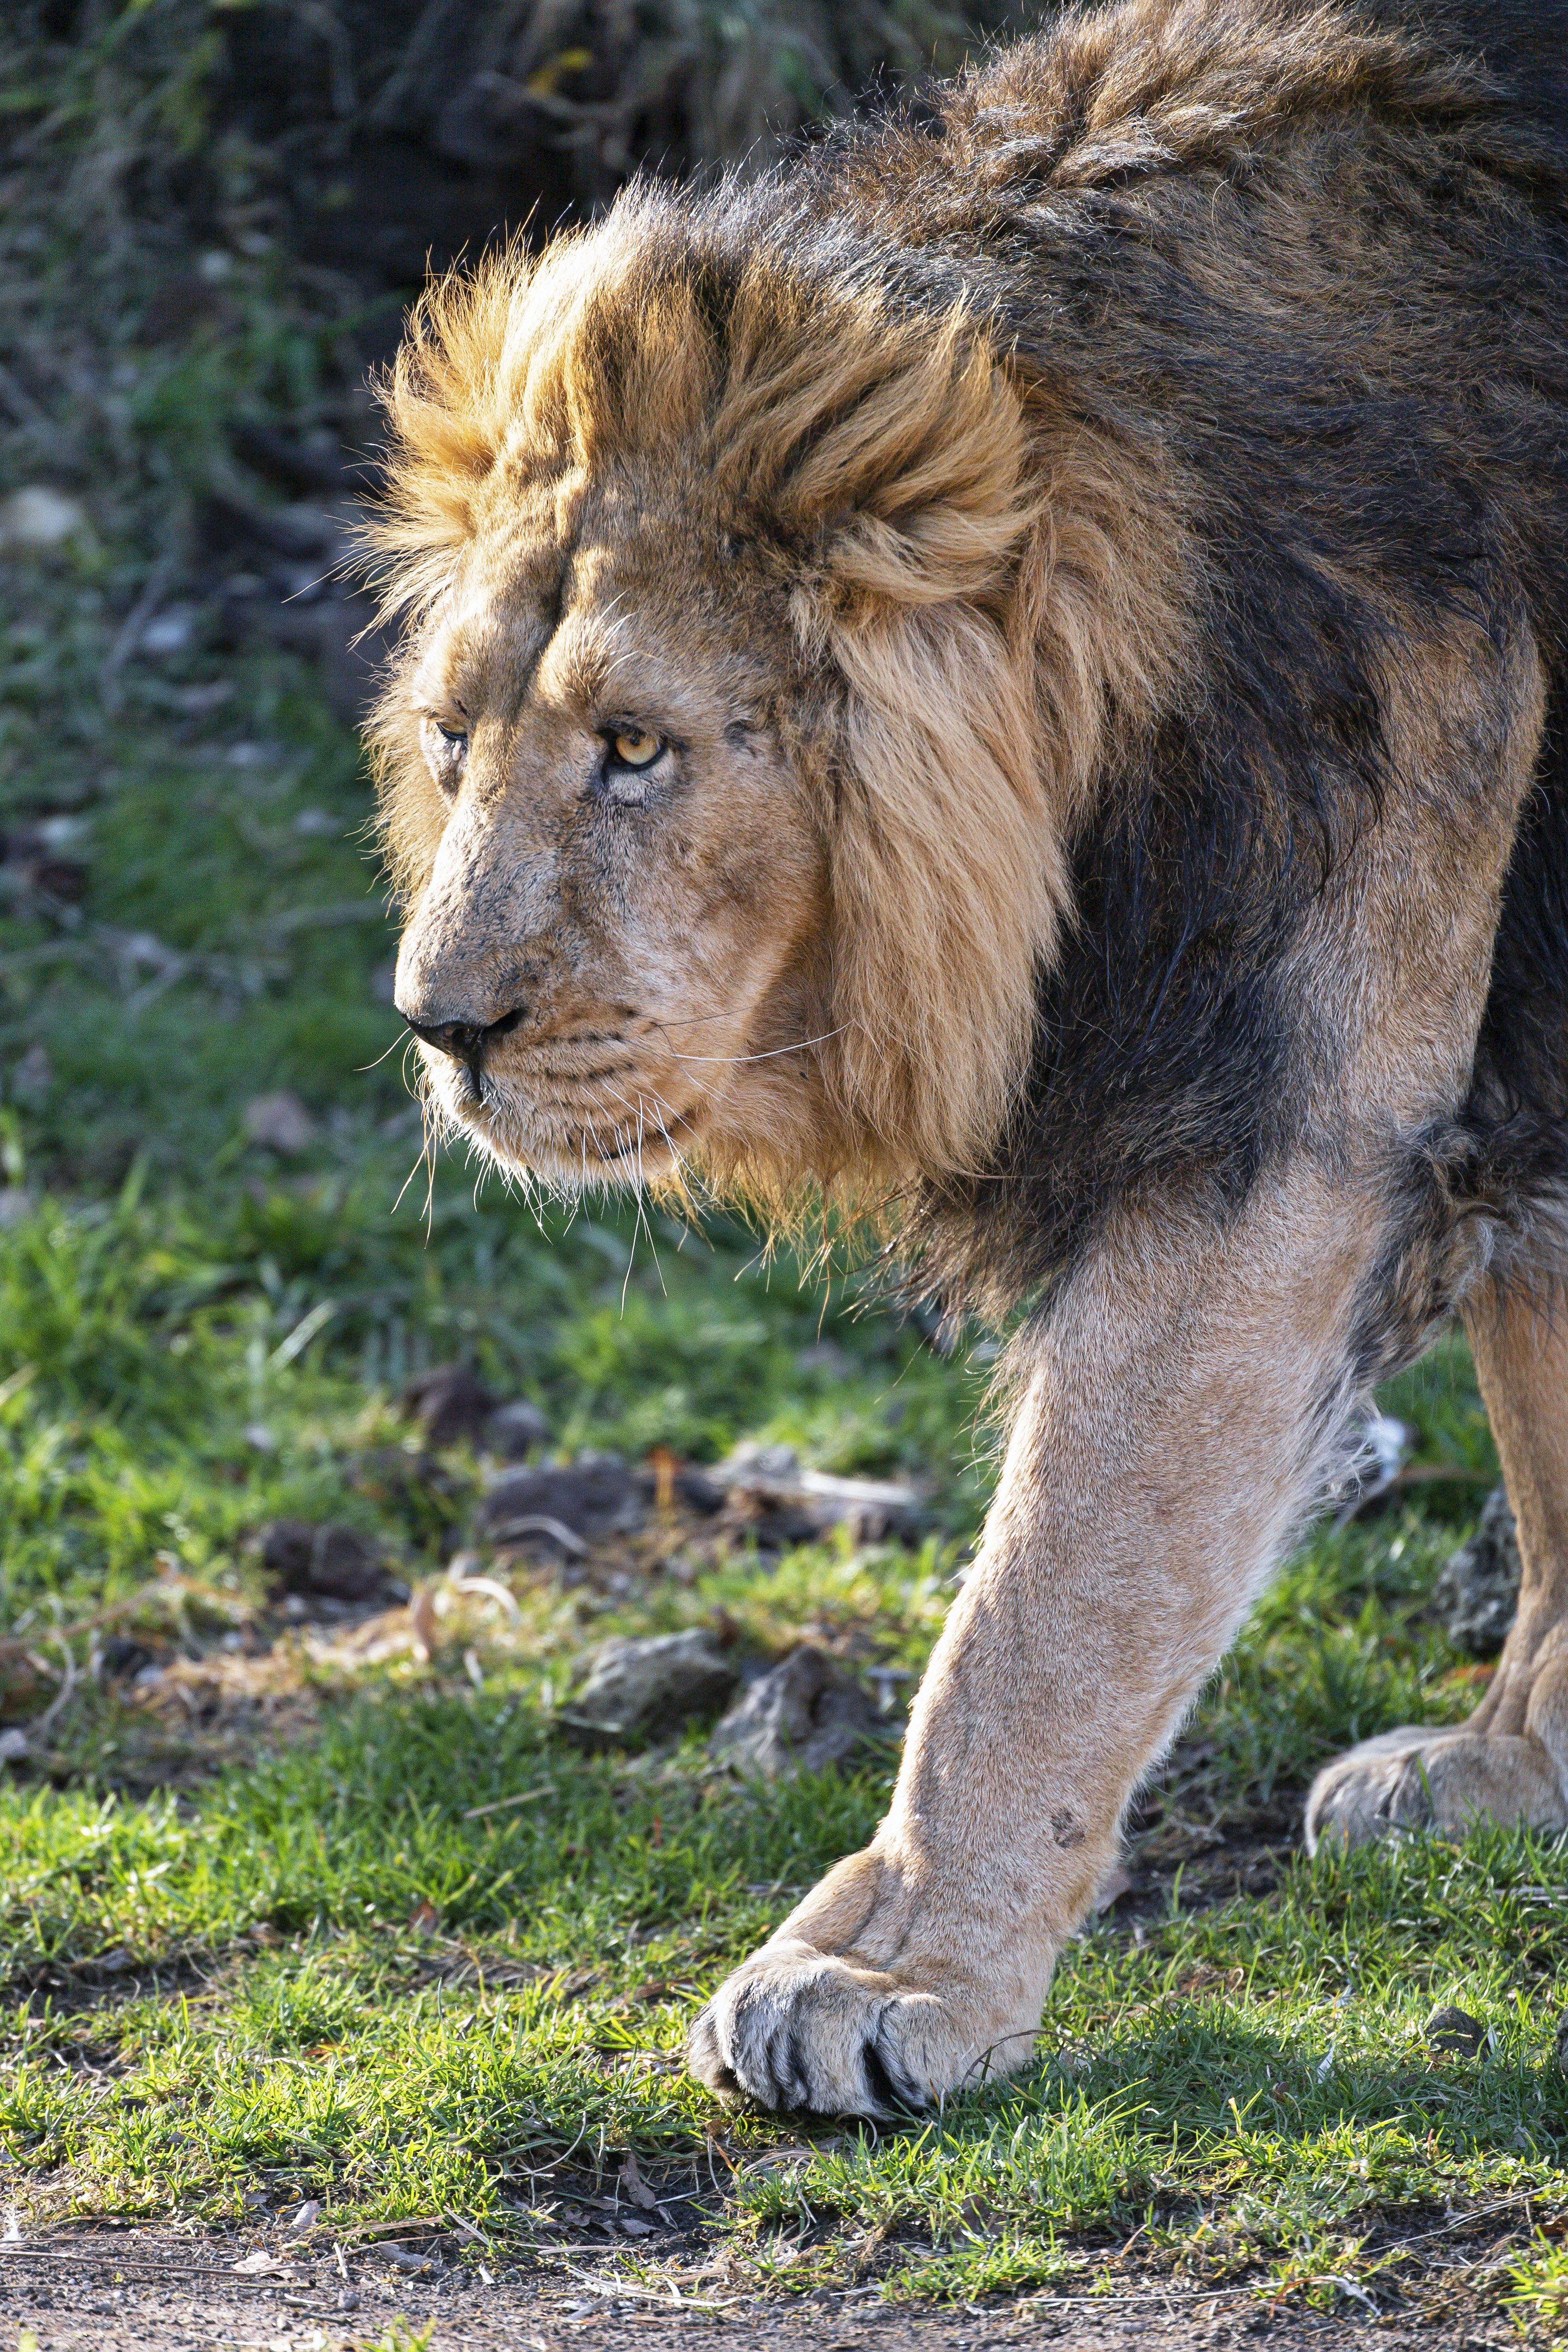 152680 download wallpaper Animals, Lion, Predator, Big Cat, Mane, Sight, Opinion screensavers and pictures for free